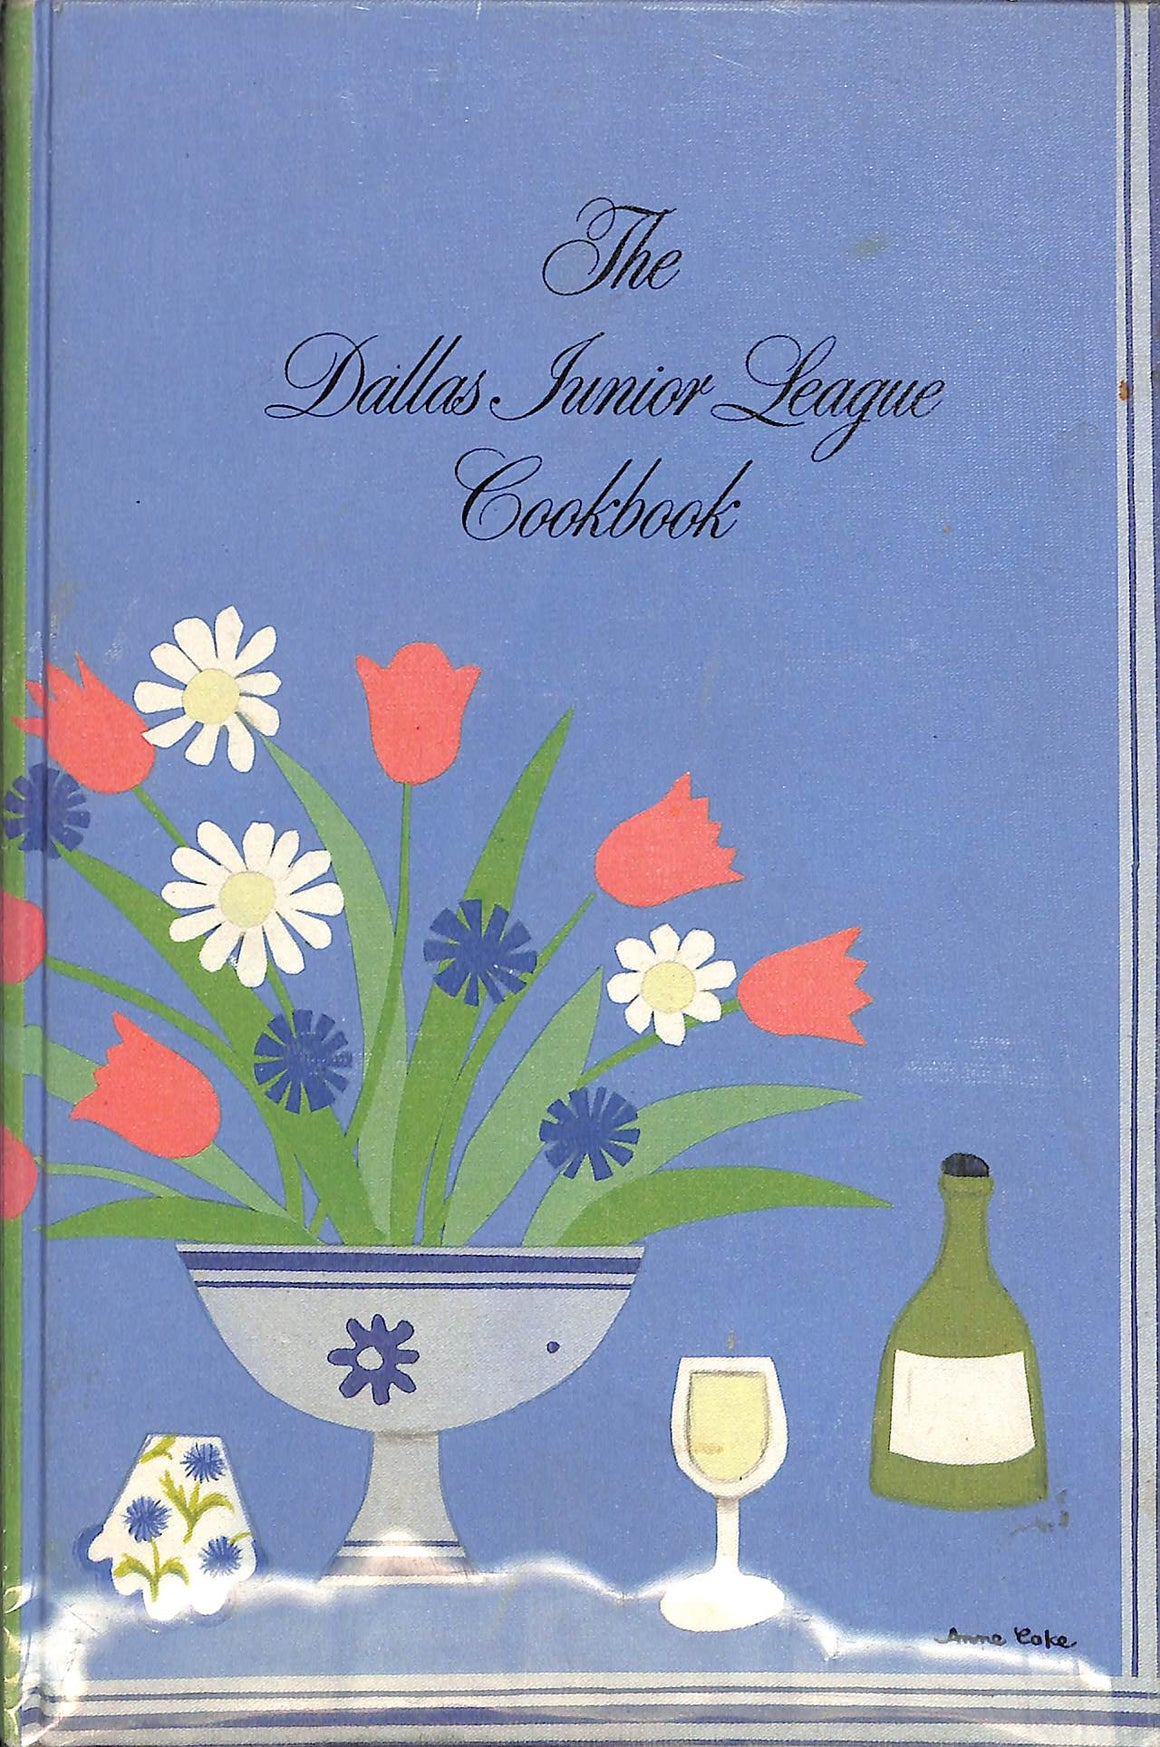 The Dallas Junior League Cookbook